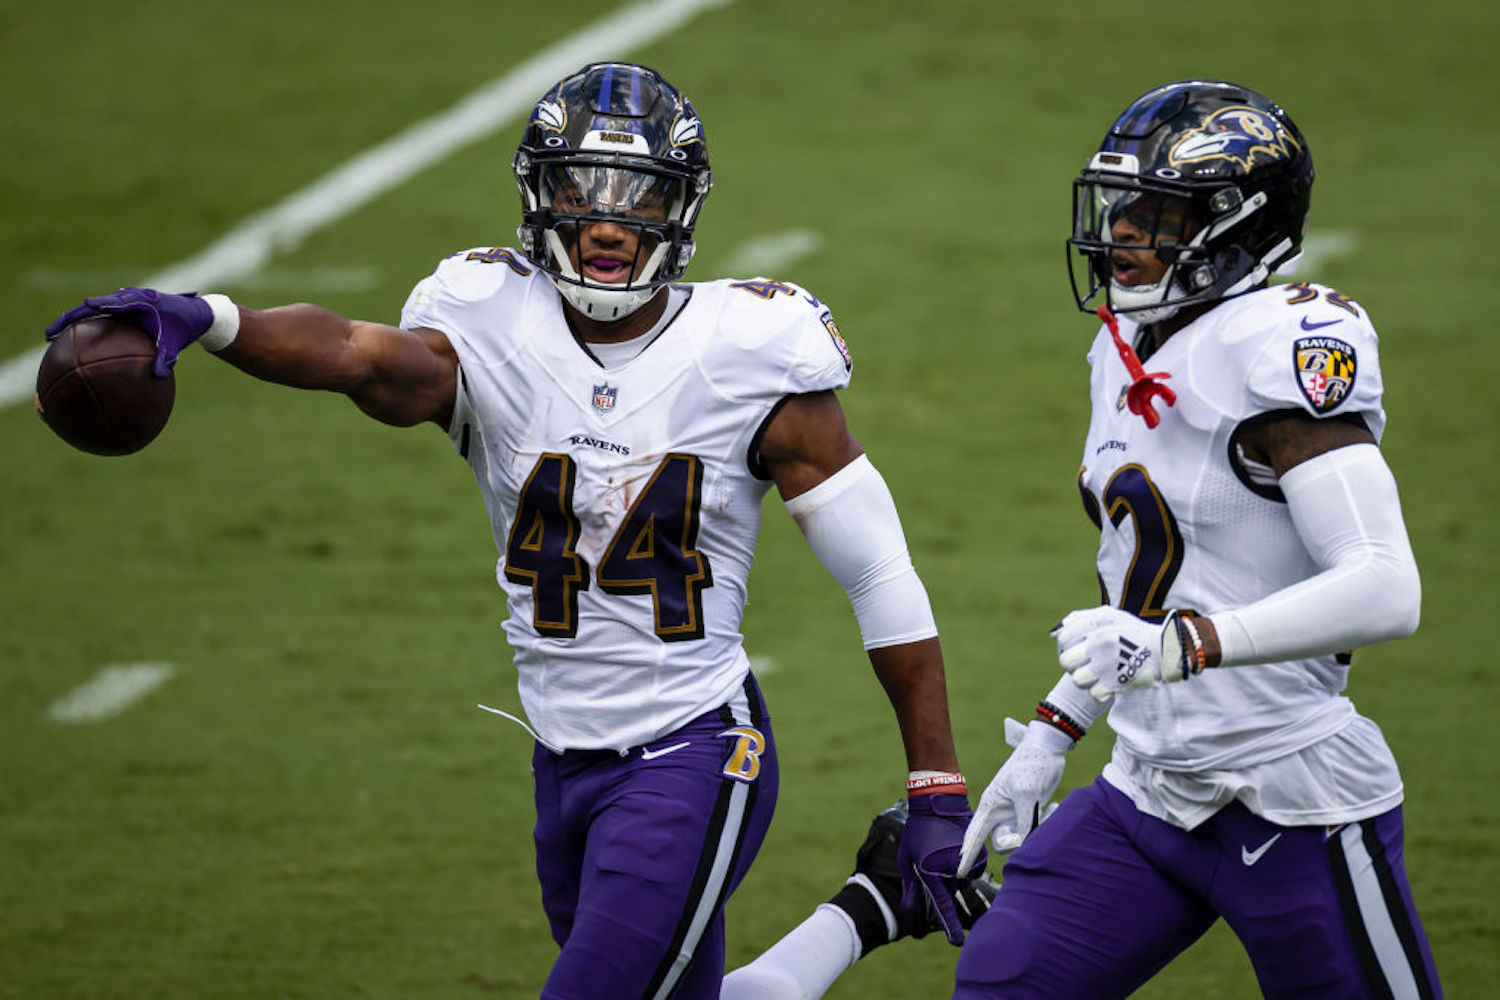 The Baltimore Ravens are shifting their focus to defense after their first loss of 2020, signing Marlon Humphrey to a $98 million extension.